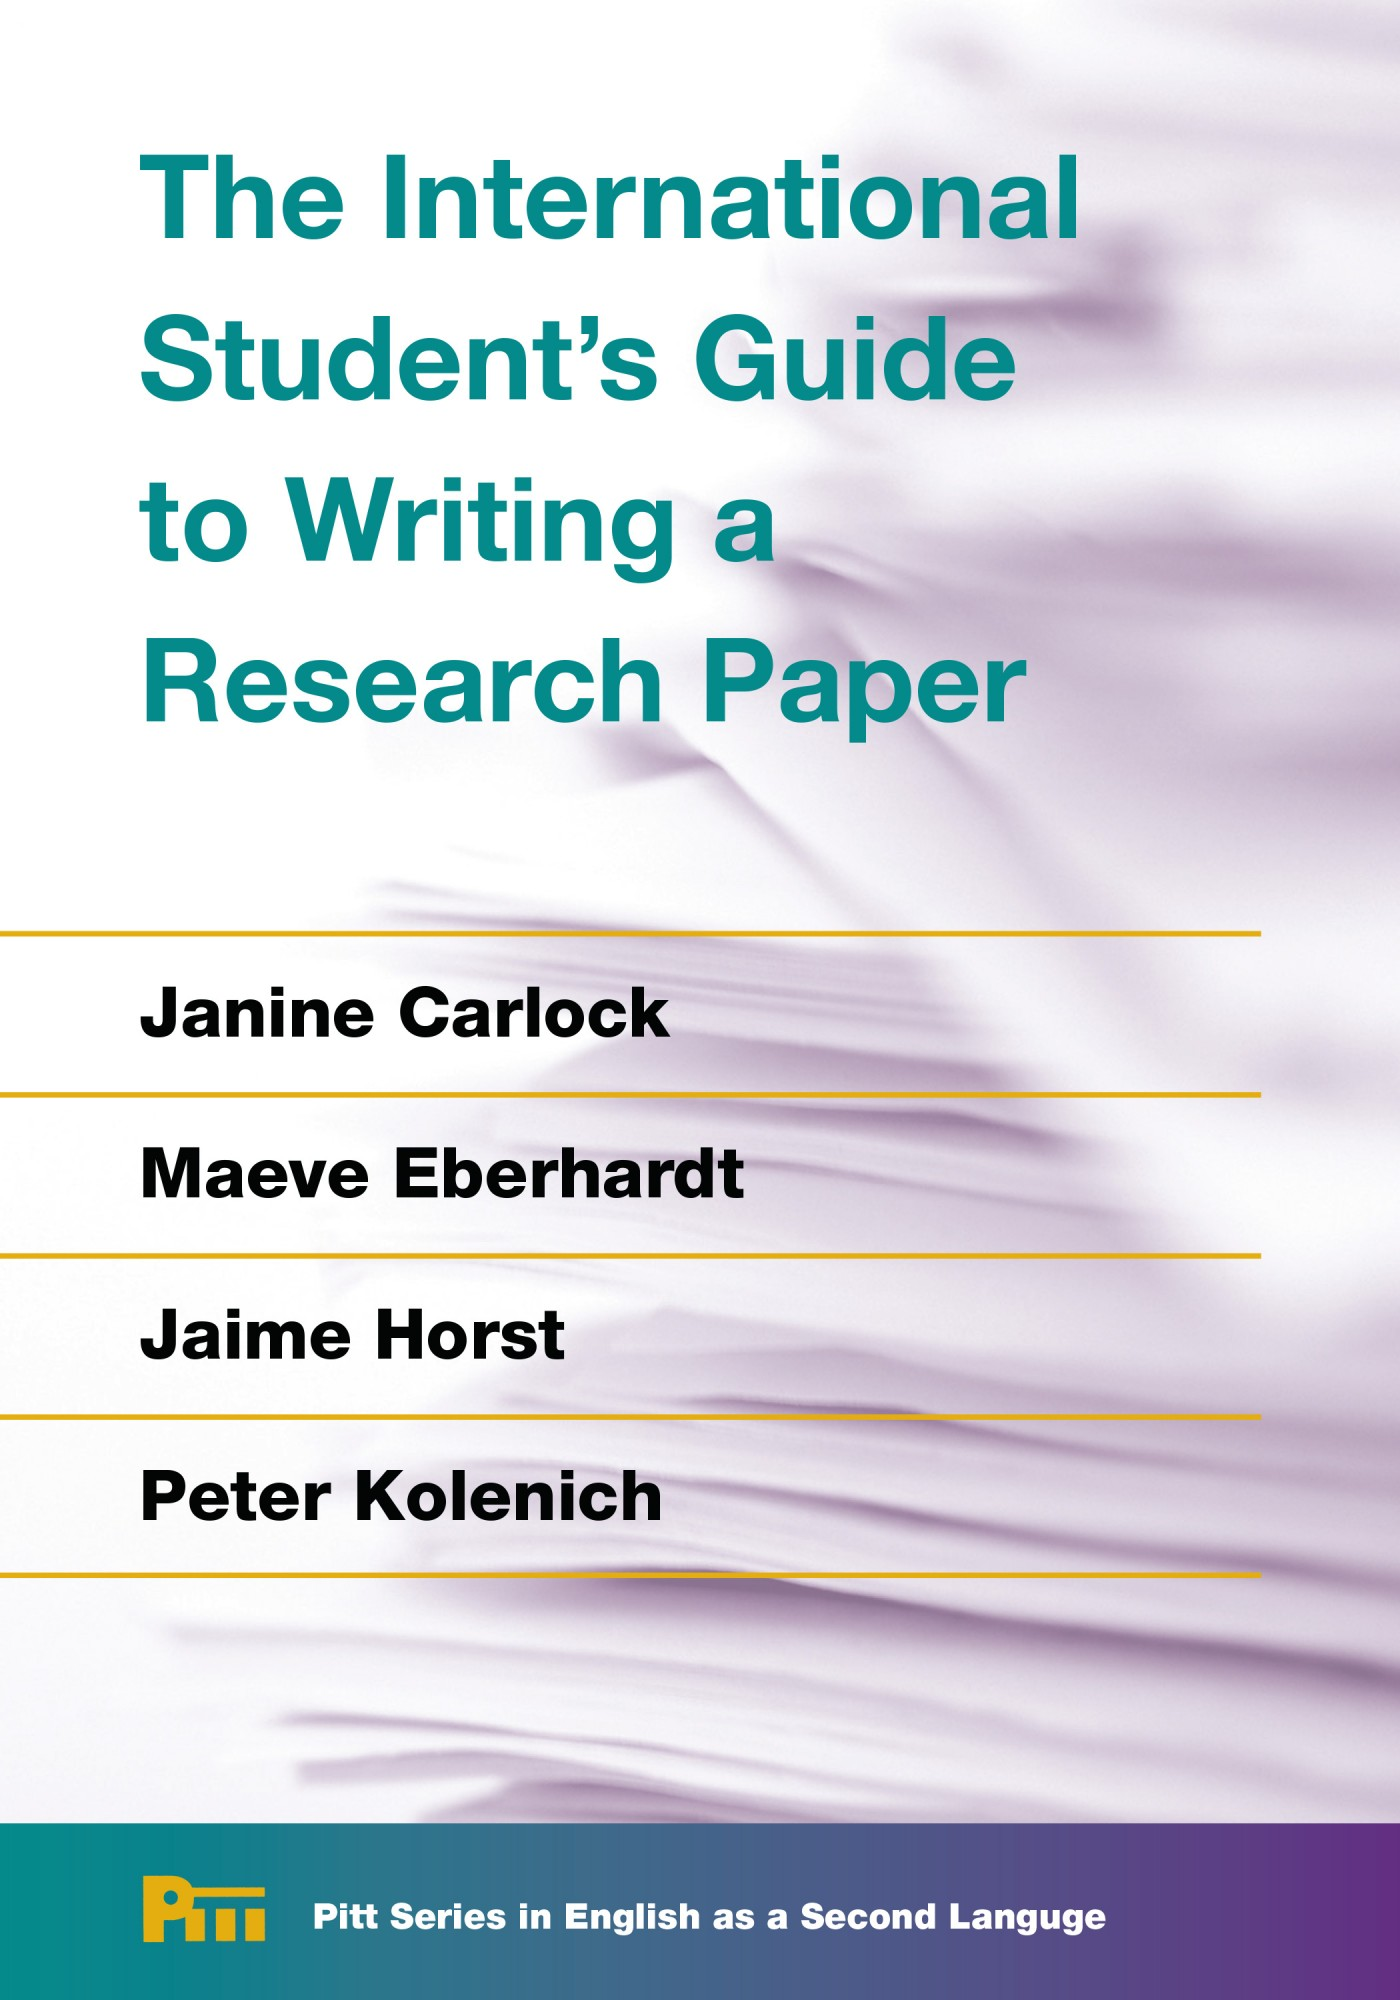 013 Writing The Research Paper Phenomenal Papers A Complete Guide 16th Edition Pdf Free Handbook Scientific 1400